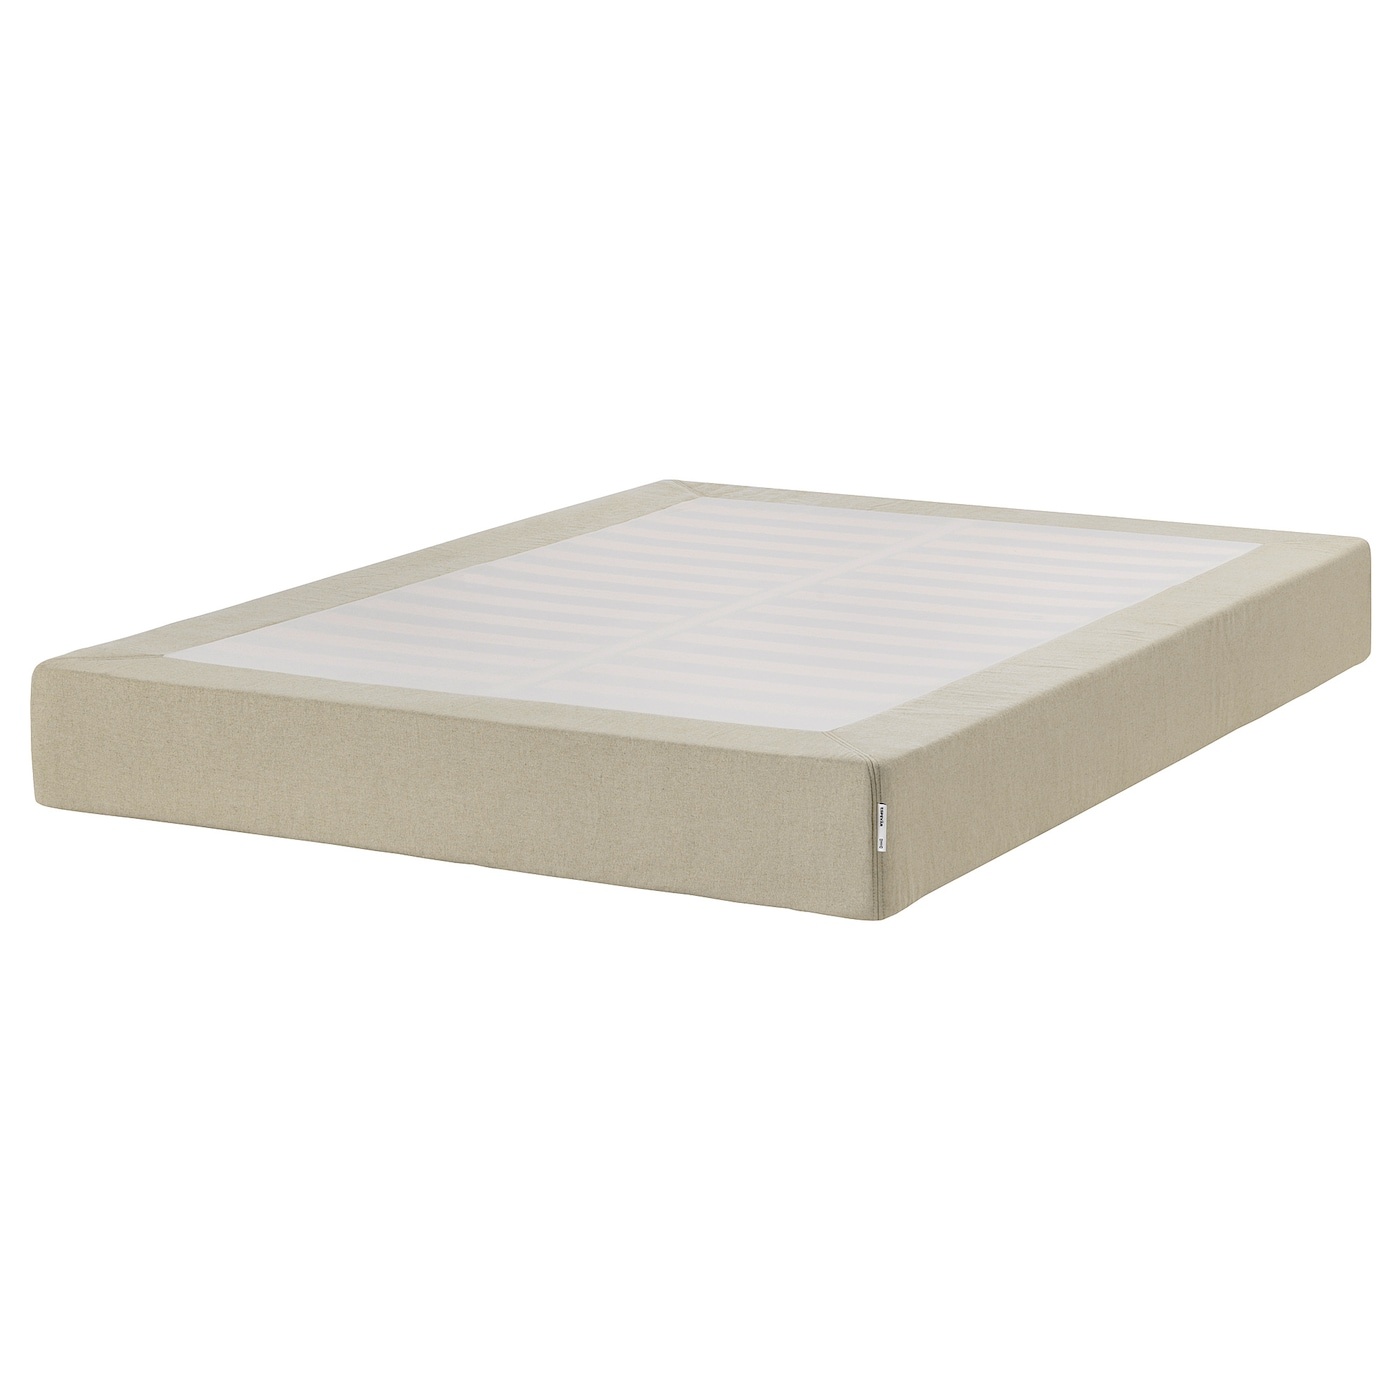 Bed Bases Mattress Bases Ikea